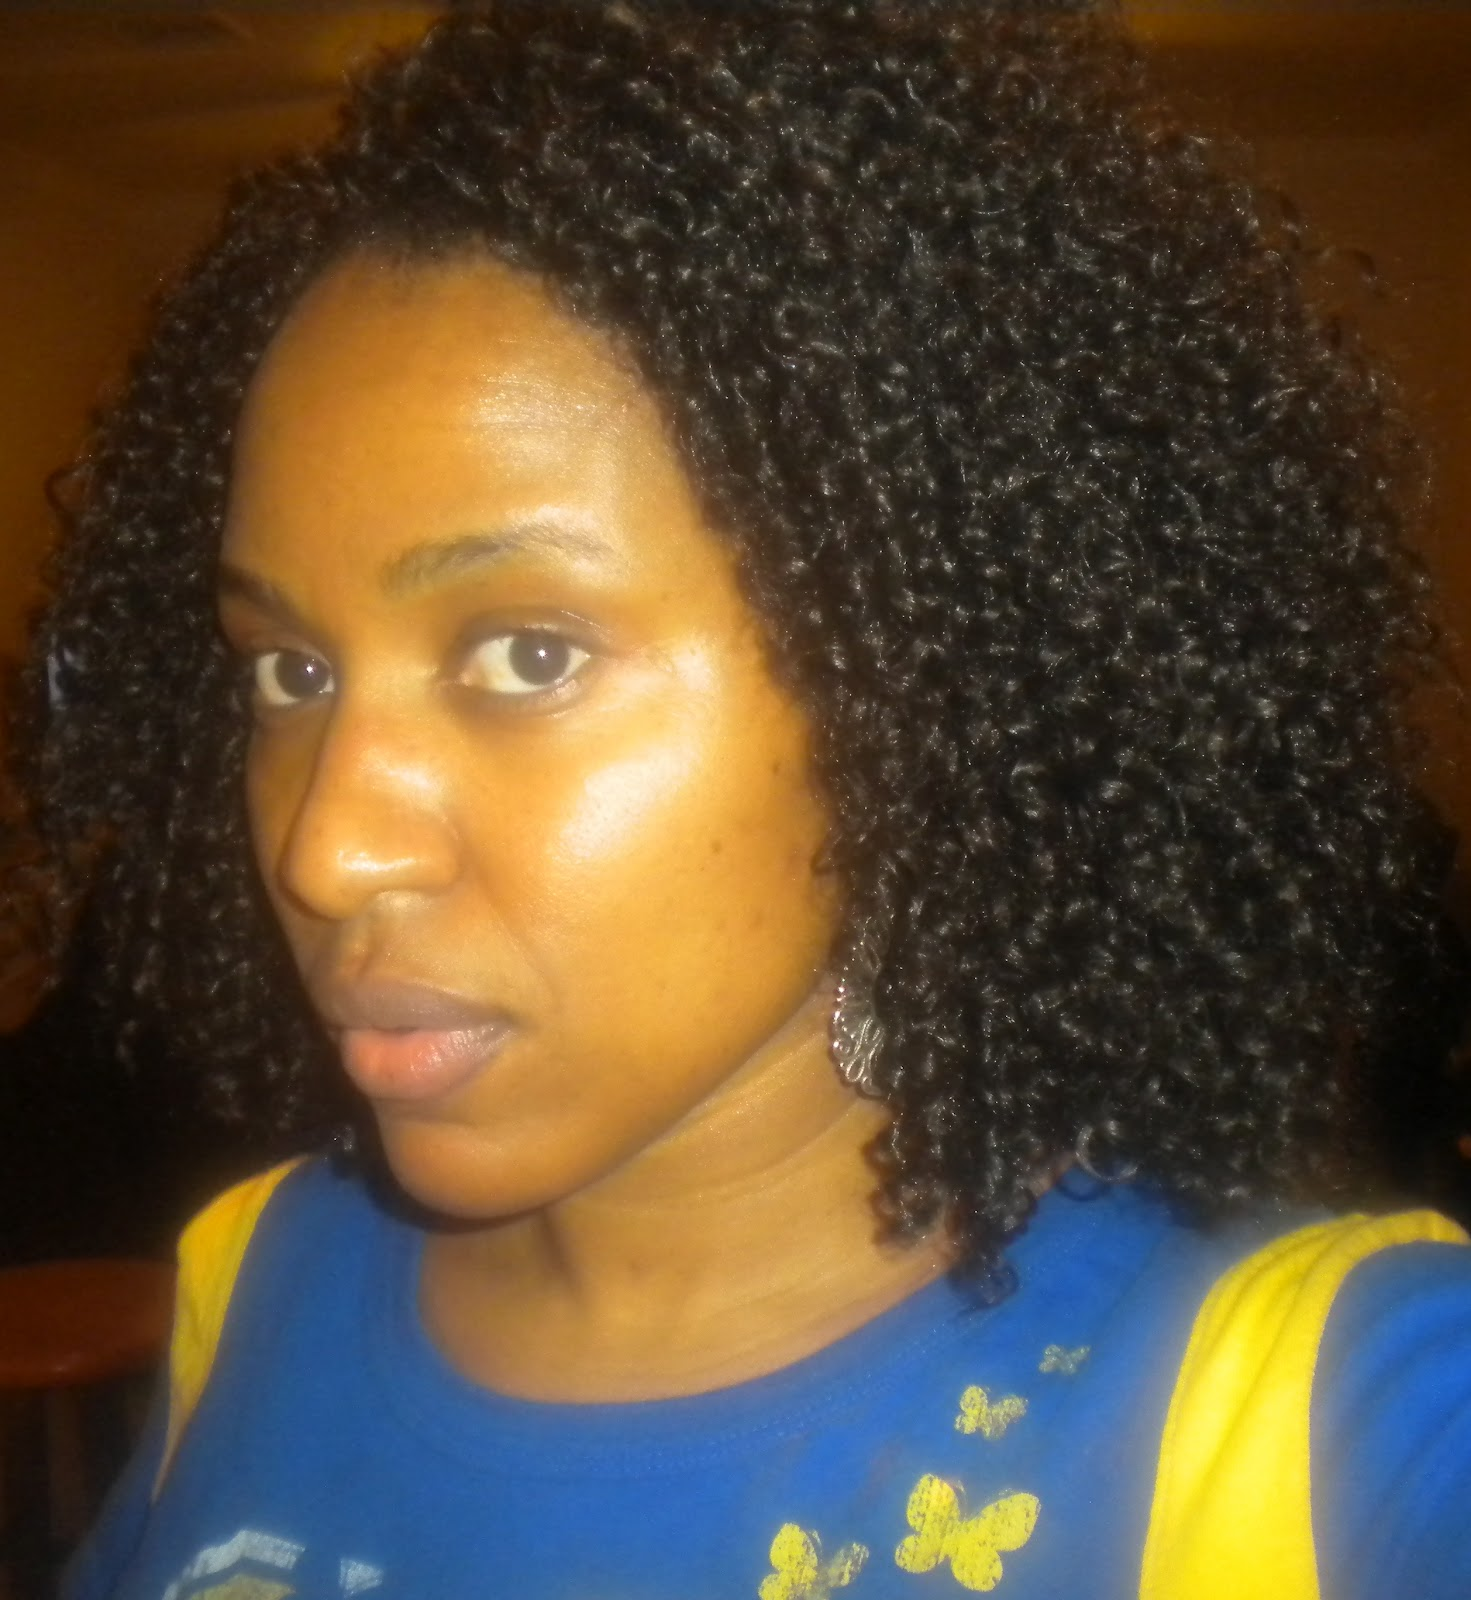 Crochet Braids Grew My Hair : pinned my braids upward and crocheted my curly synthetic braiding hair ...